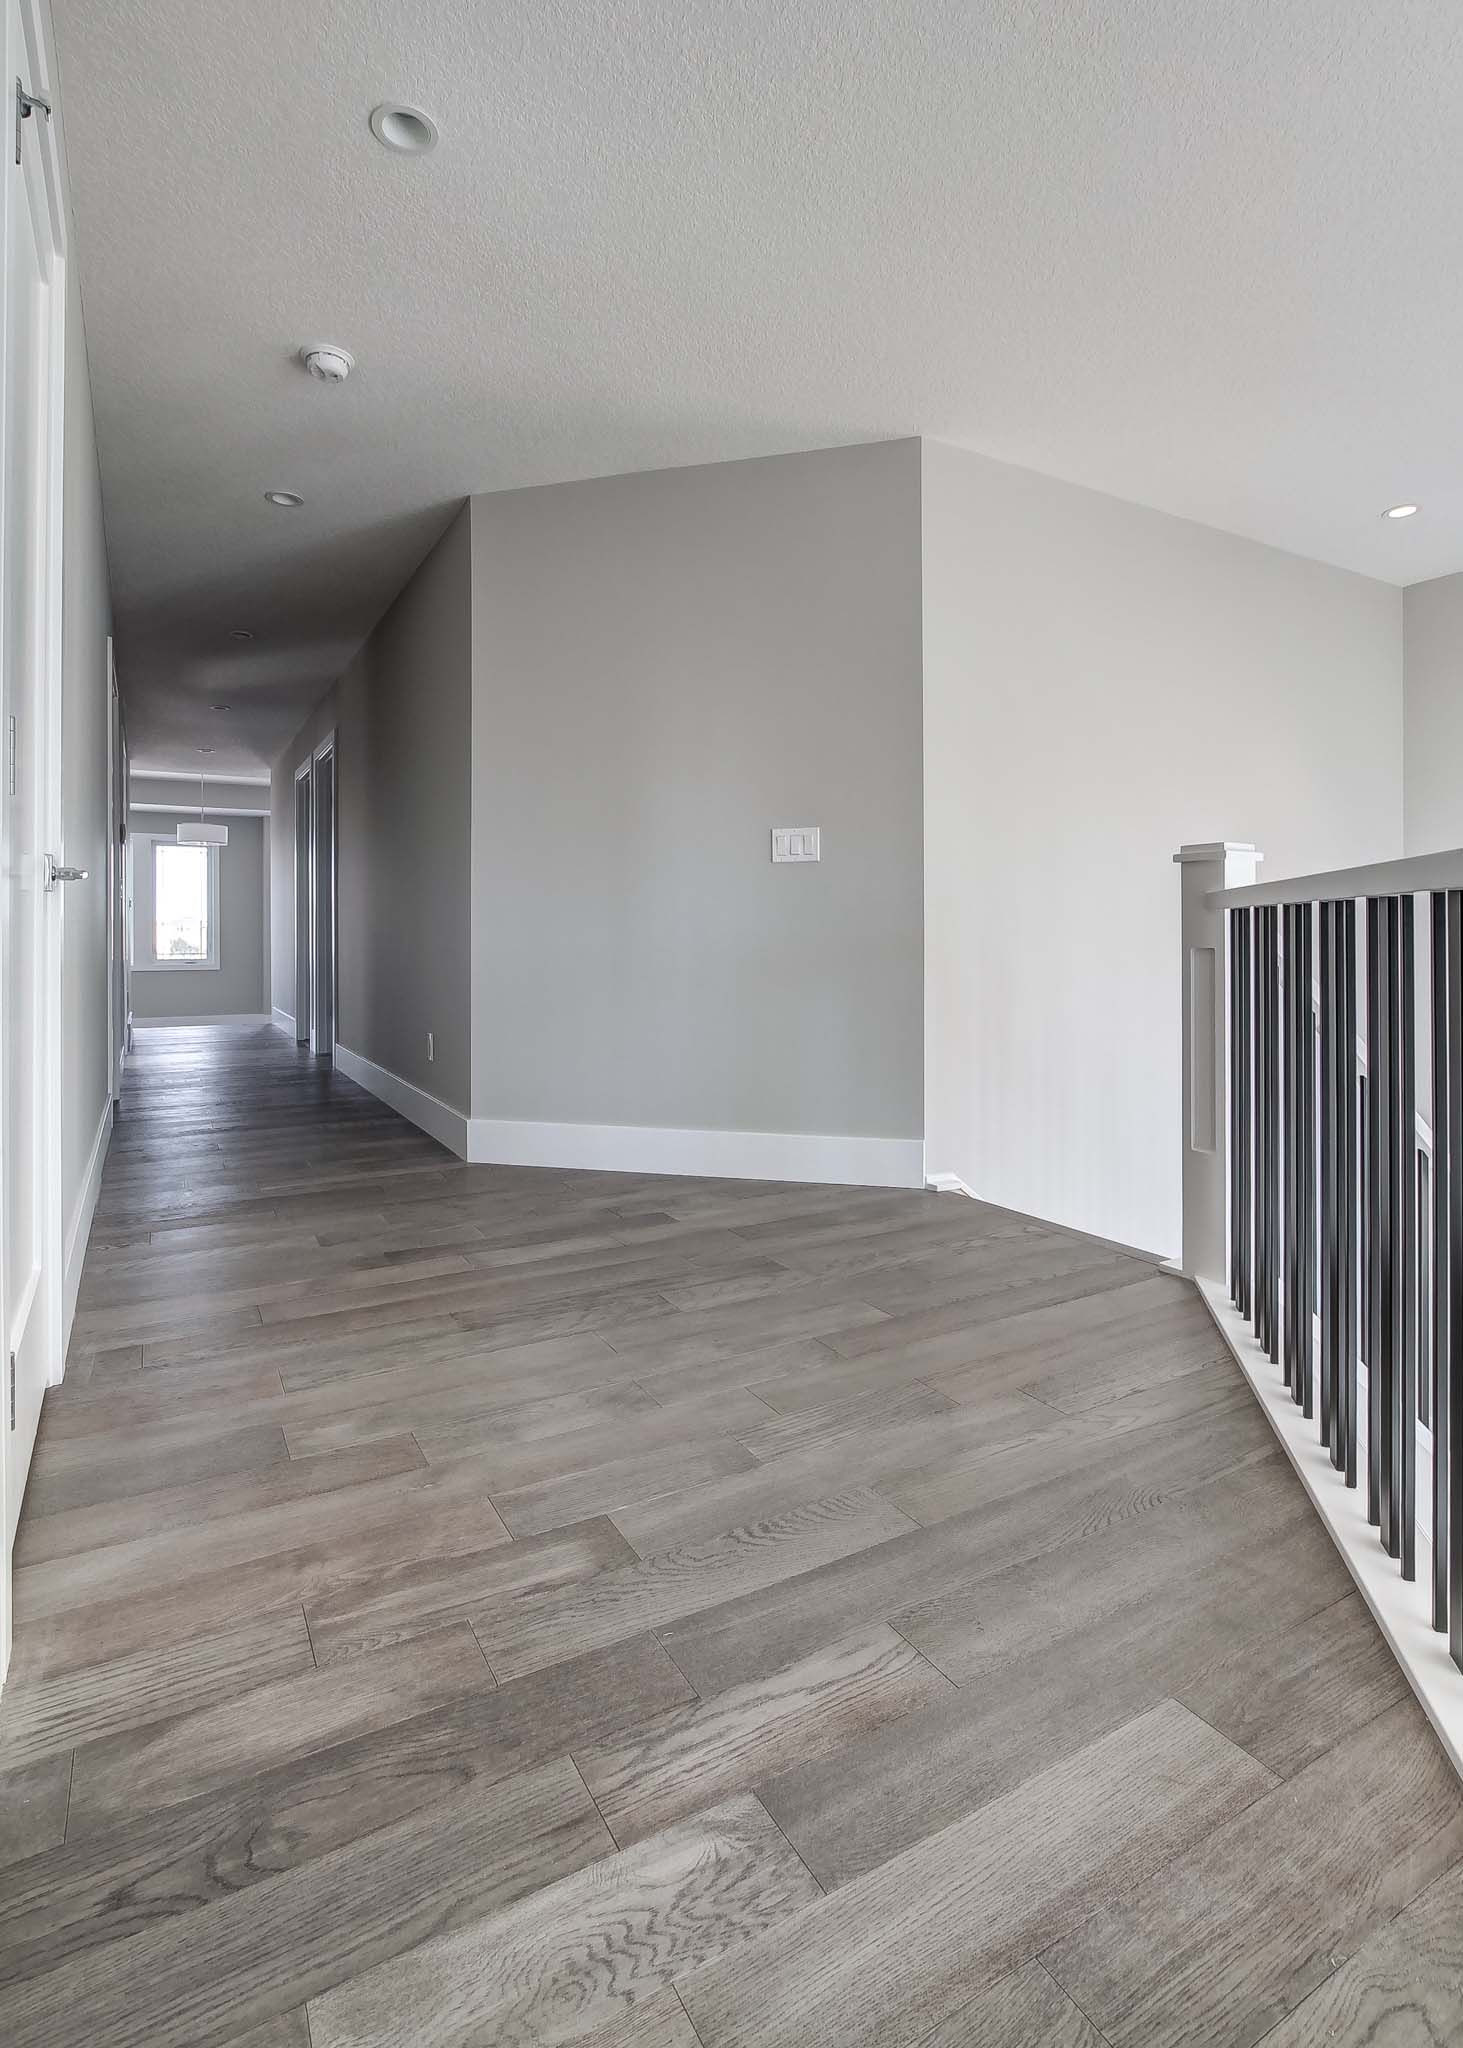 hardwood flooring toronto ontario of pin by kendra clark on future home ideas pinterest house future throughout 45 cute decor ideas to work on today stylish home decorating designs